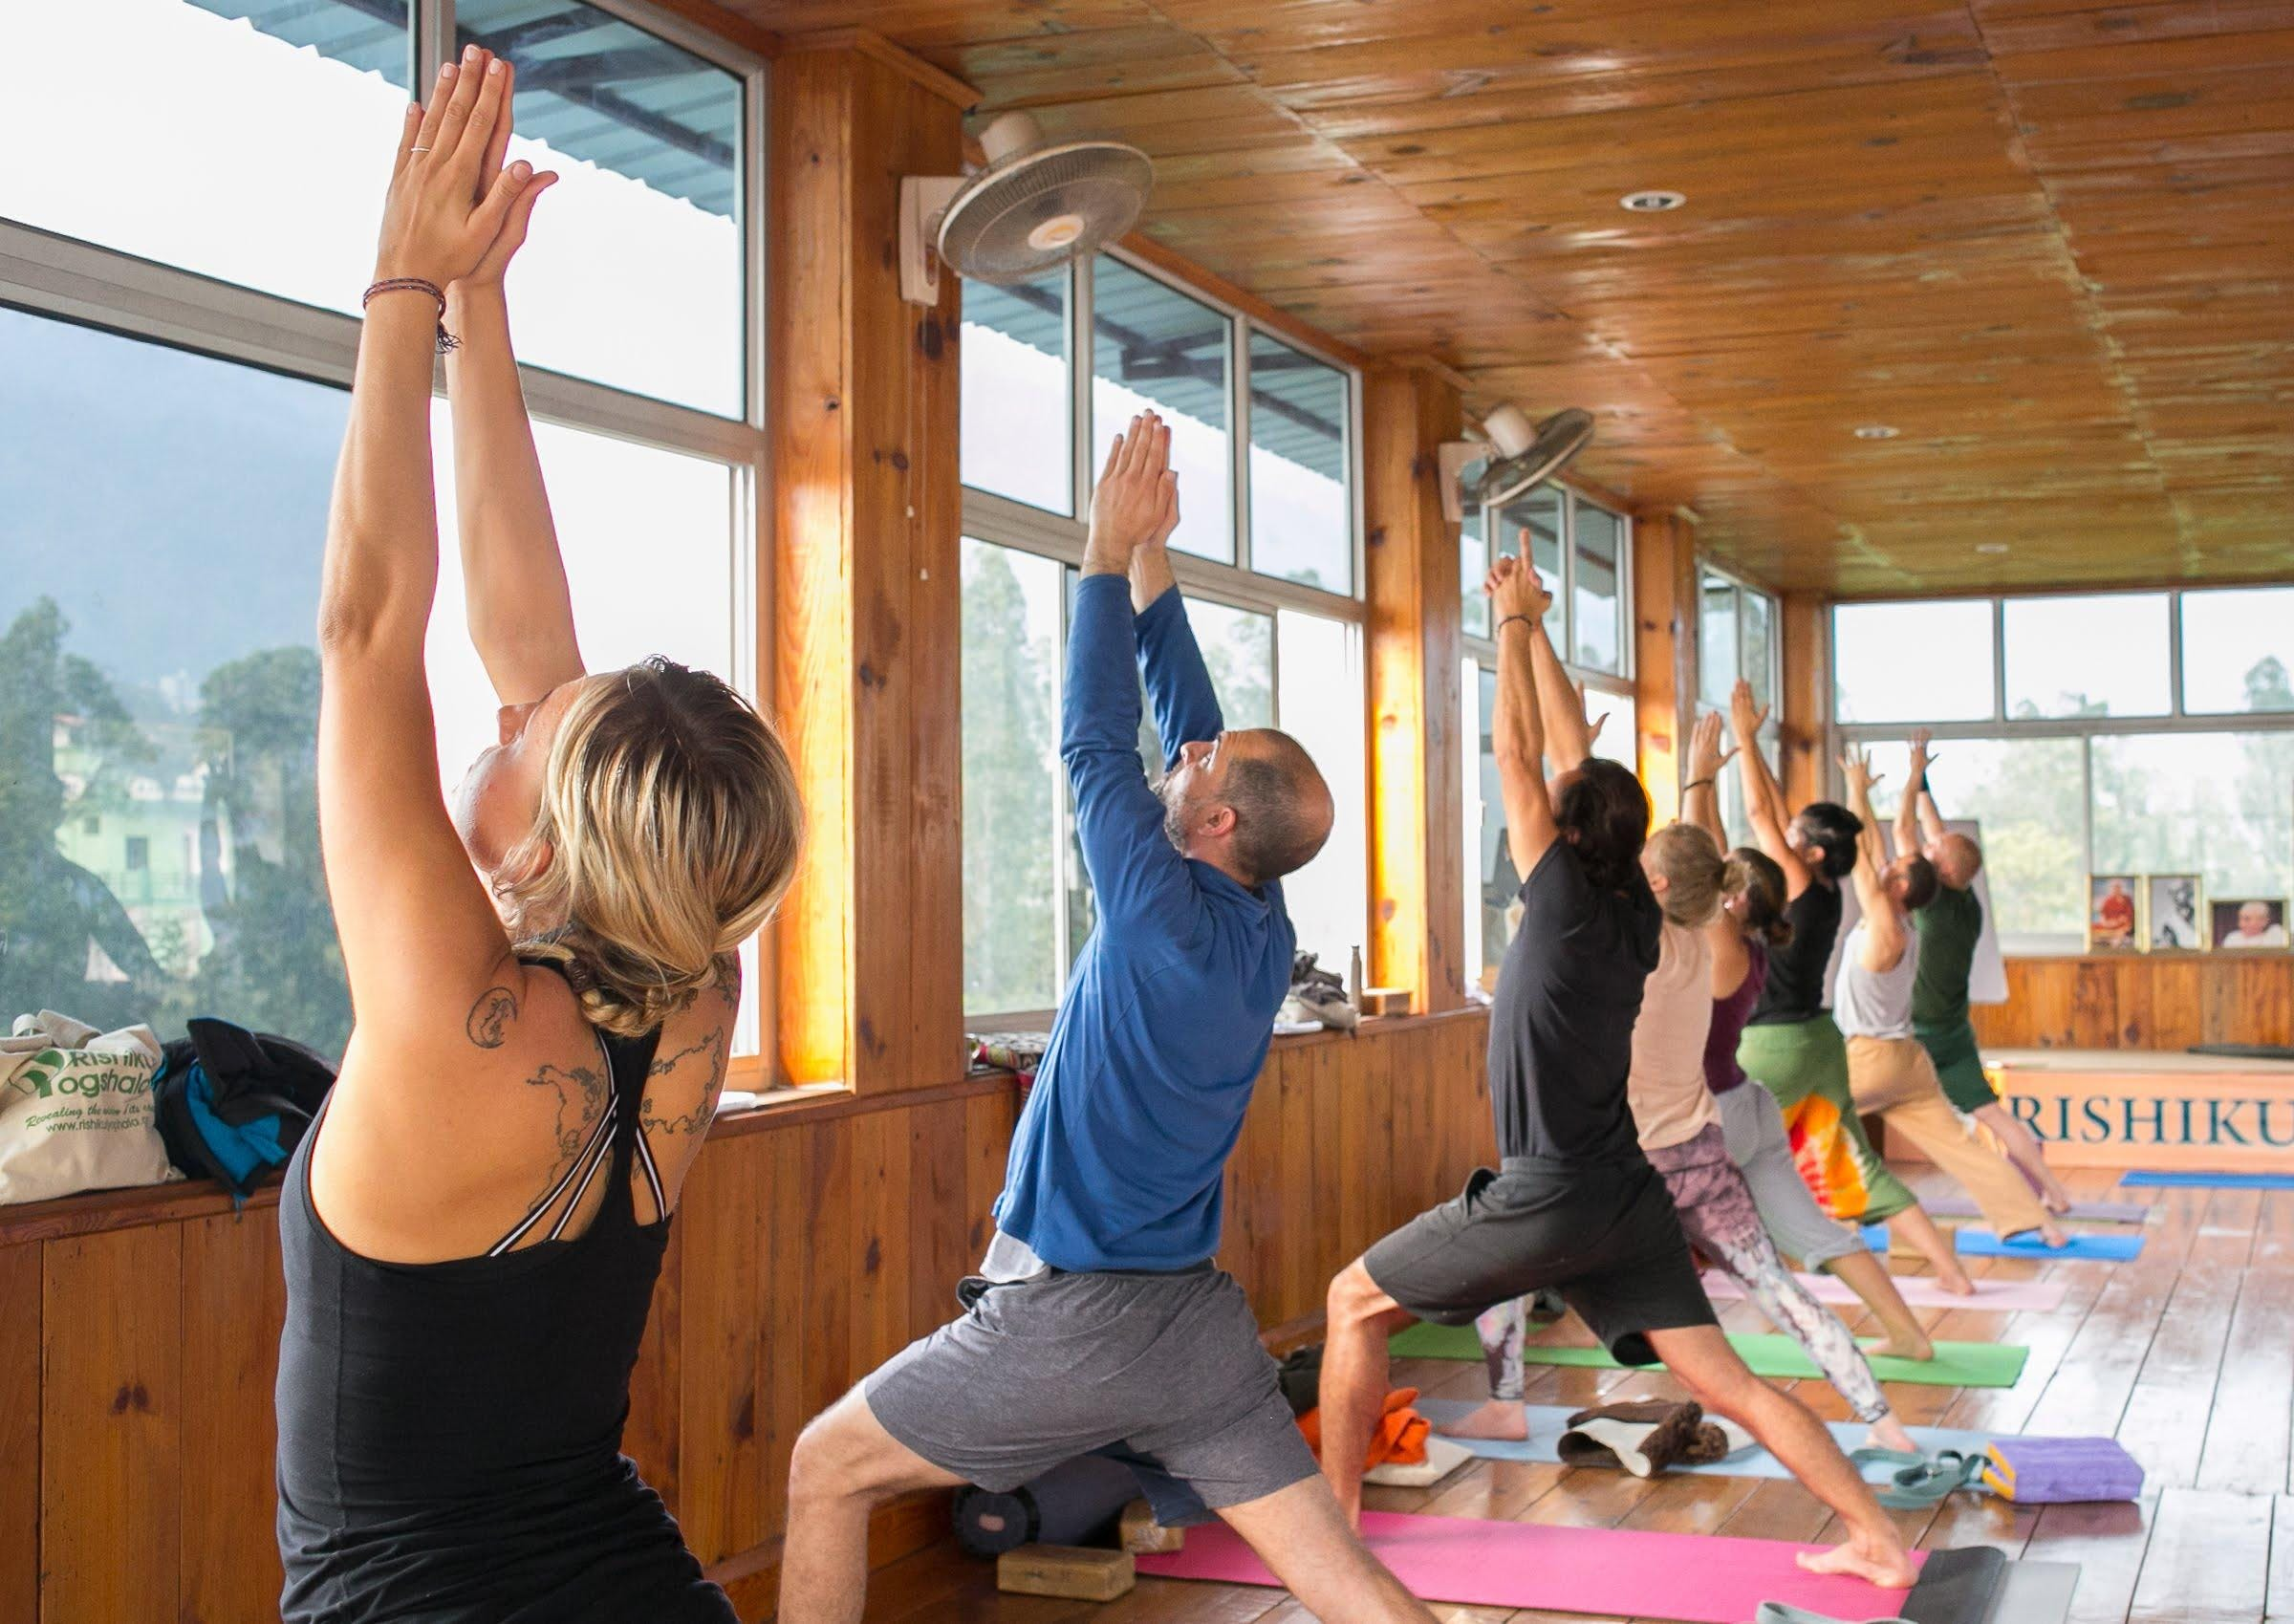 Tantra Yoga in Rishikesh events in the City. Top Upcoming Events for ... 8732bdb76377